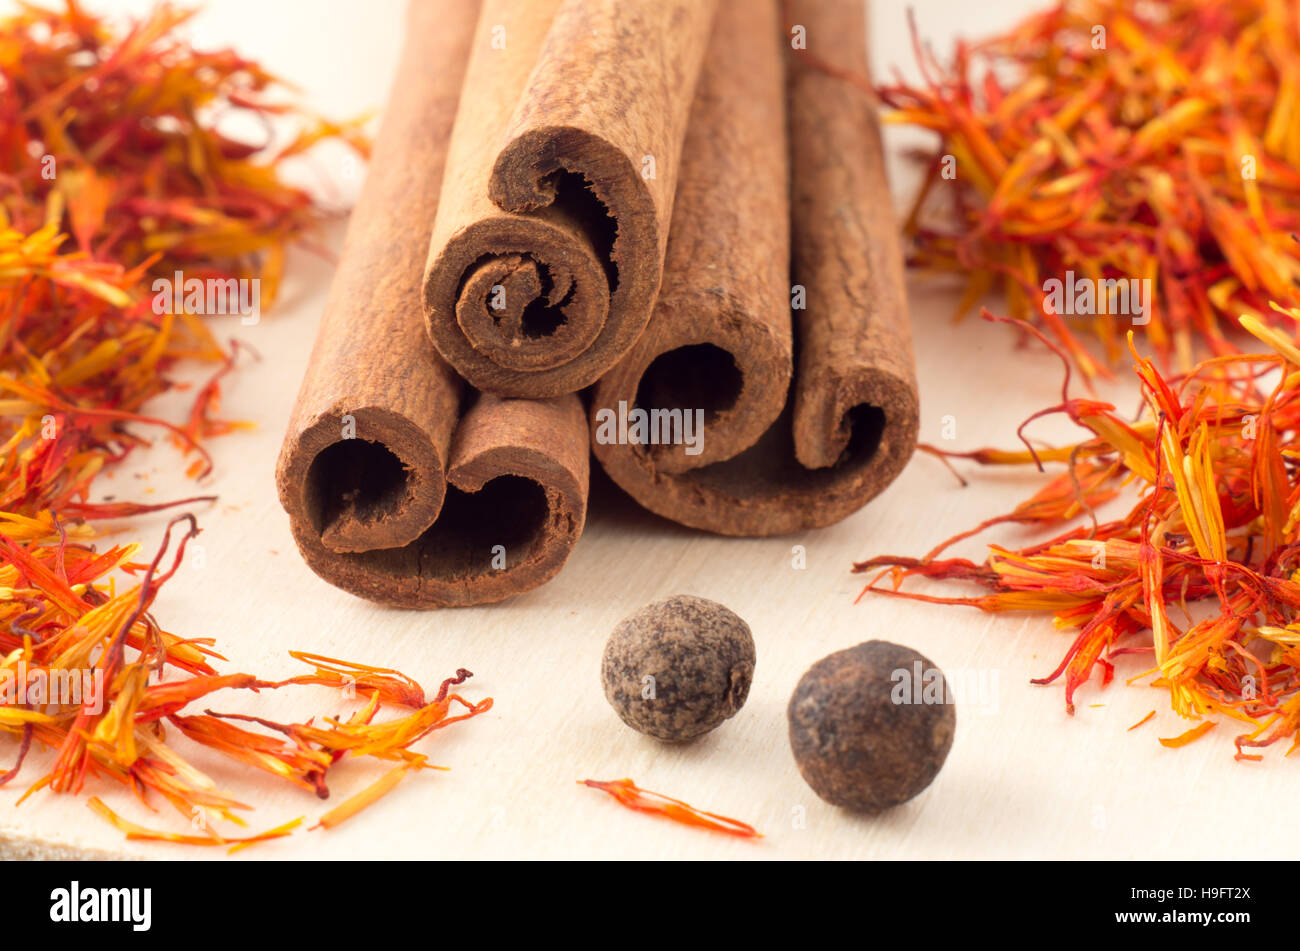 Cinnamon sticks, aromatic saffron and pimento on yellow wooden tray close-up with shallow depth of focus. - Stock Image